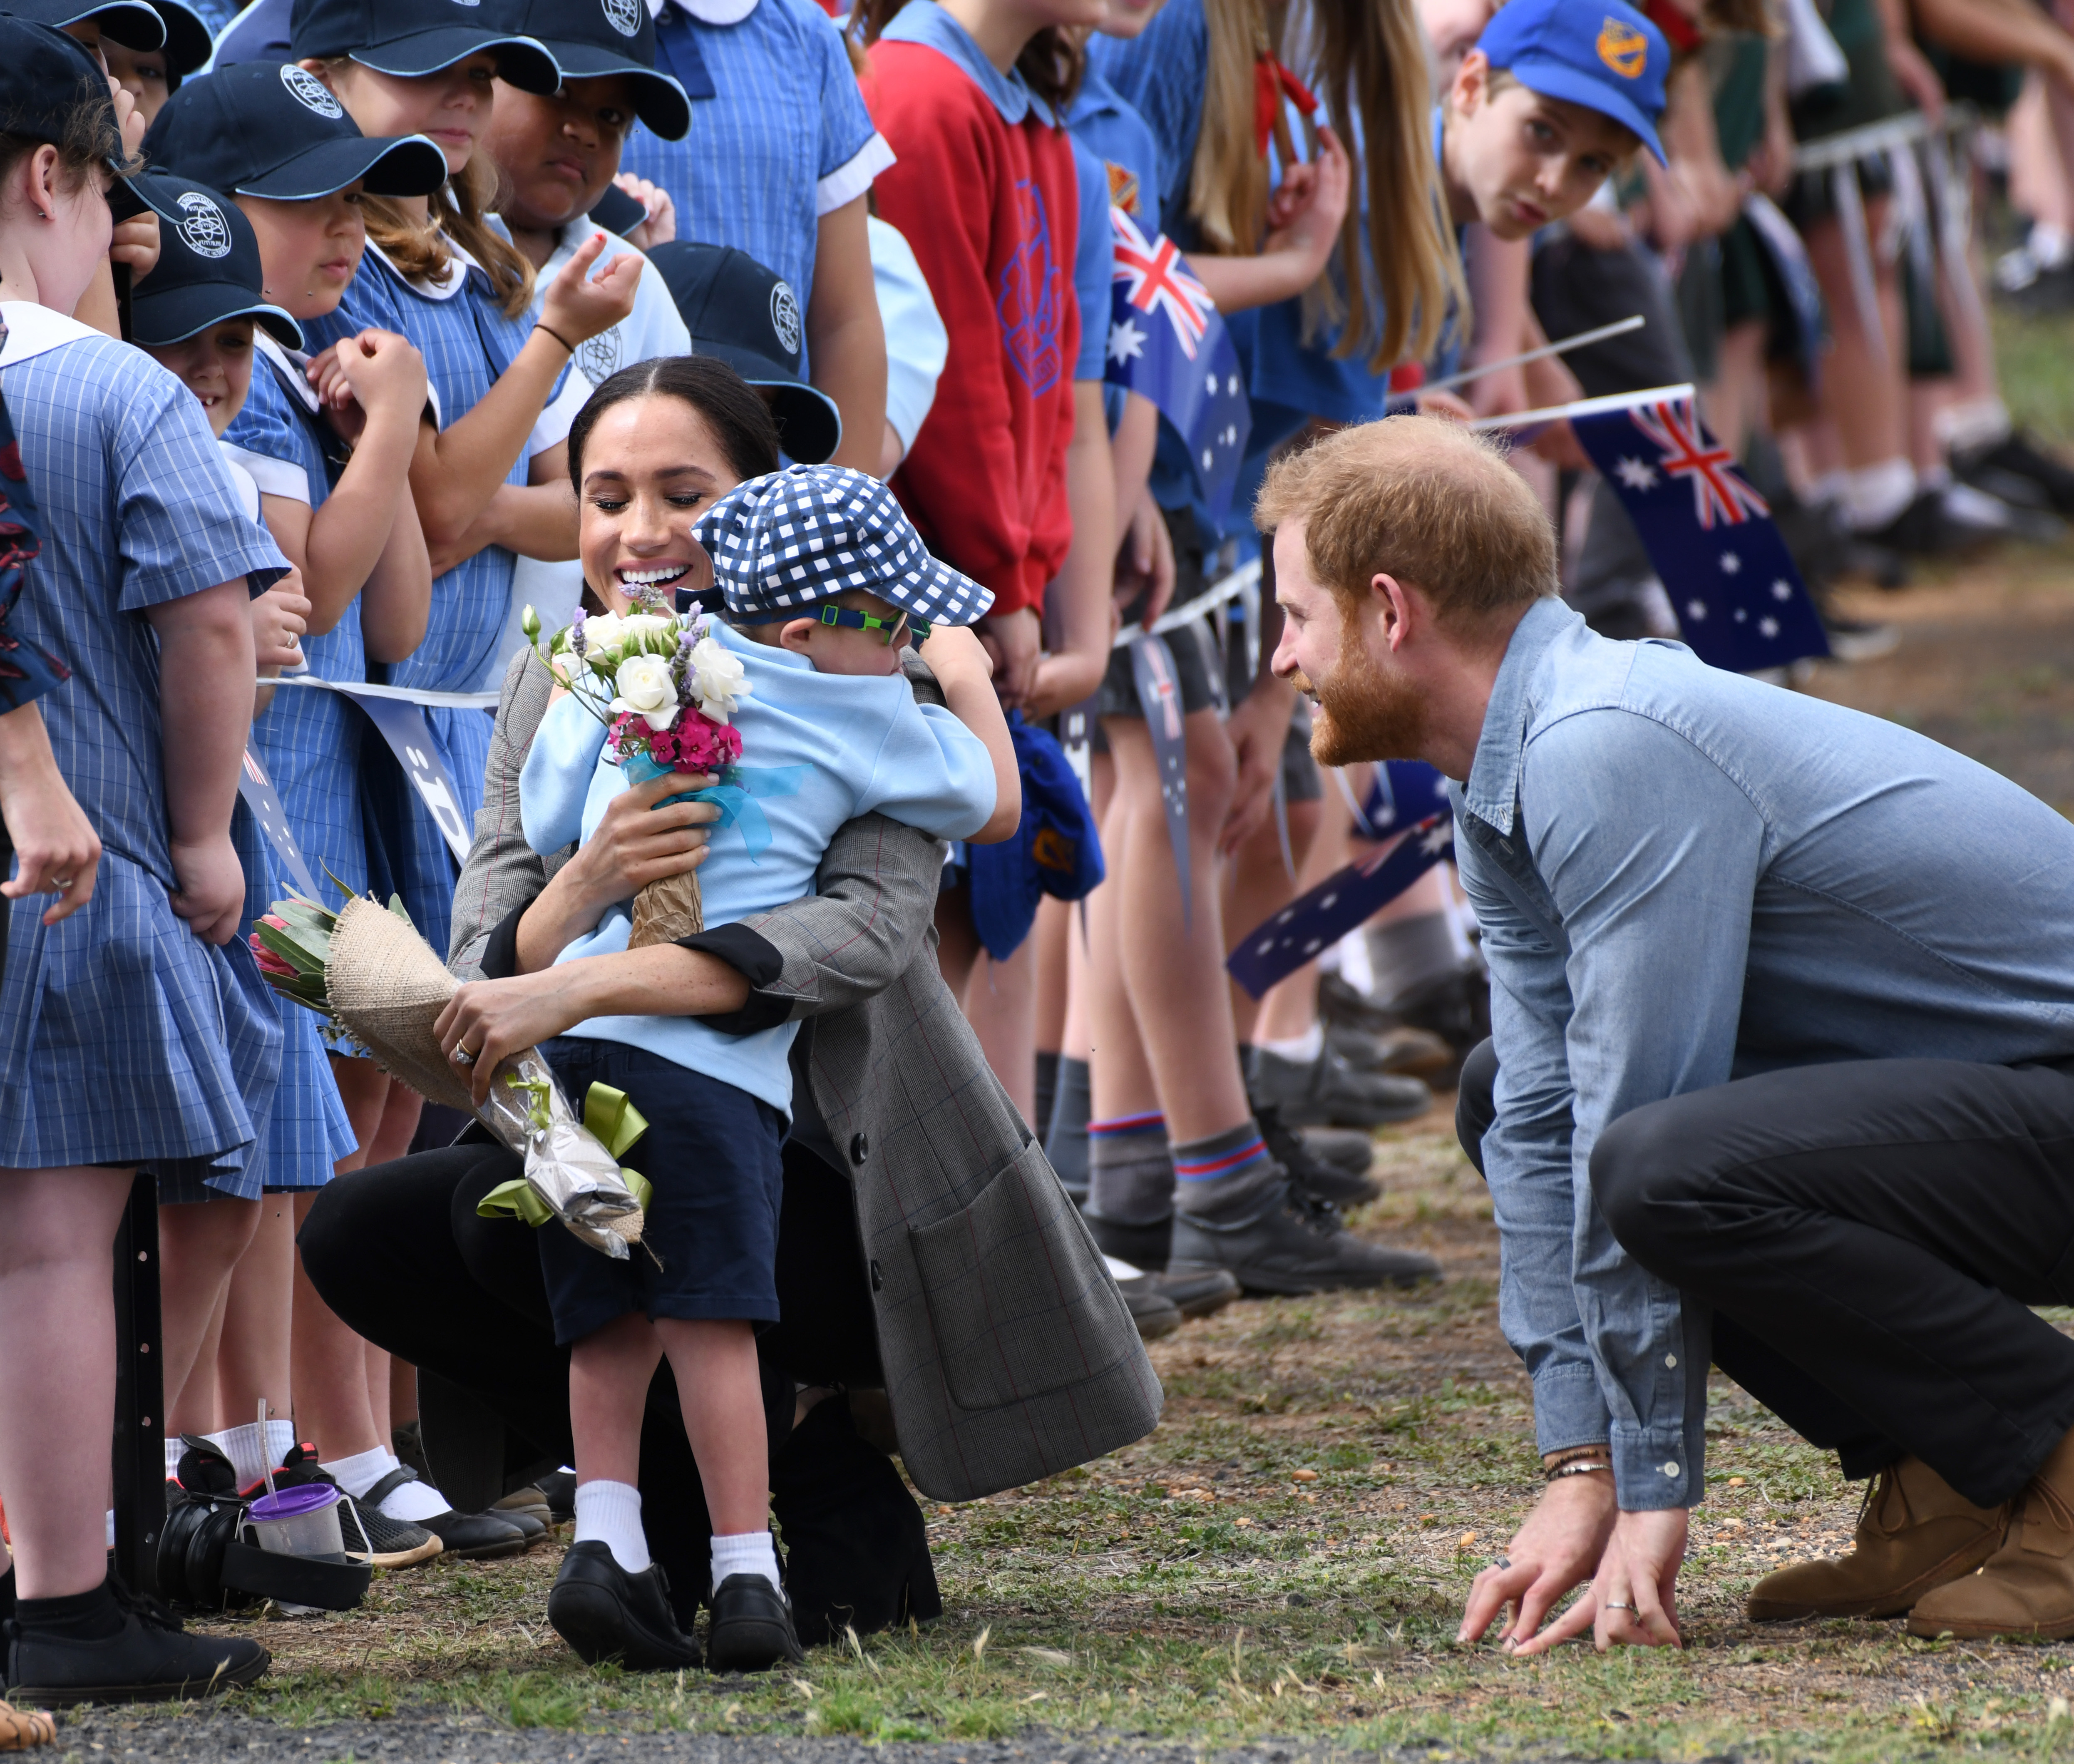 Prince Harry gets newspaper credit for photo of Meghan Markle with lookalike